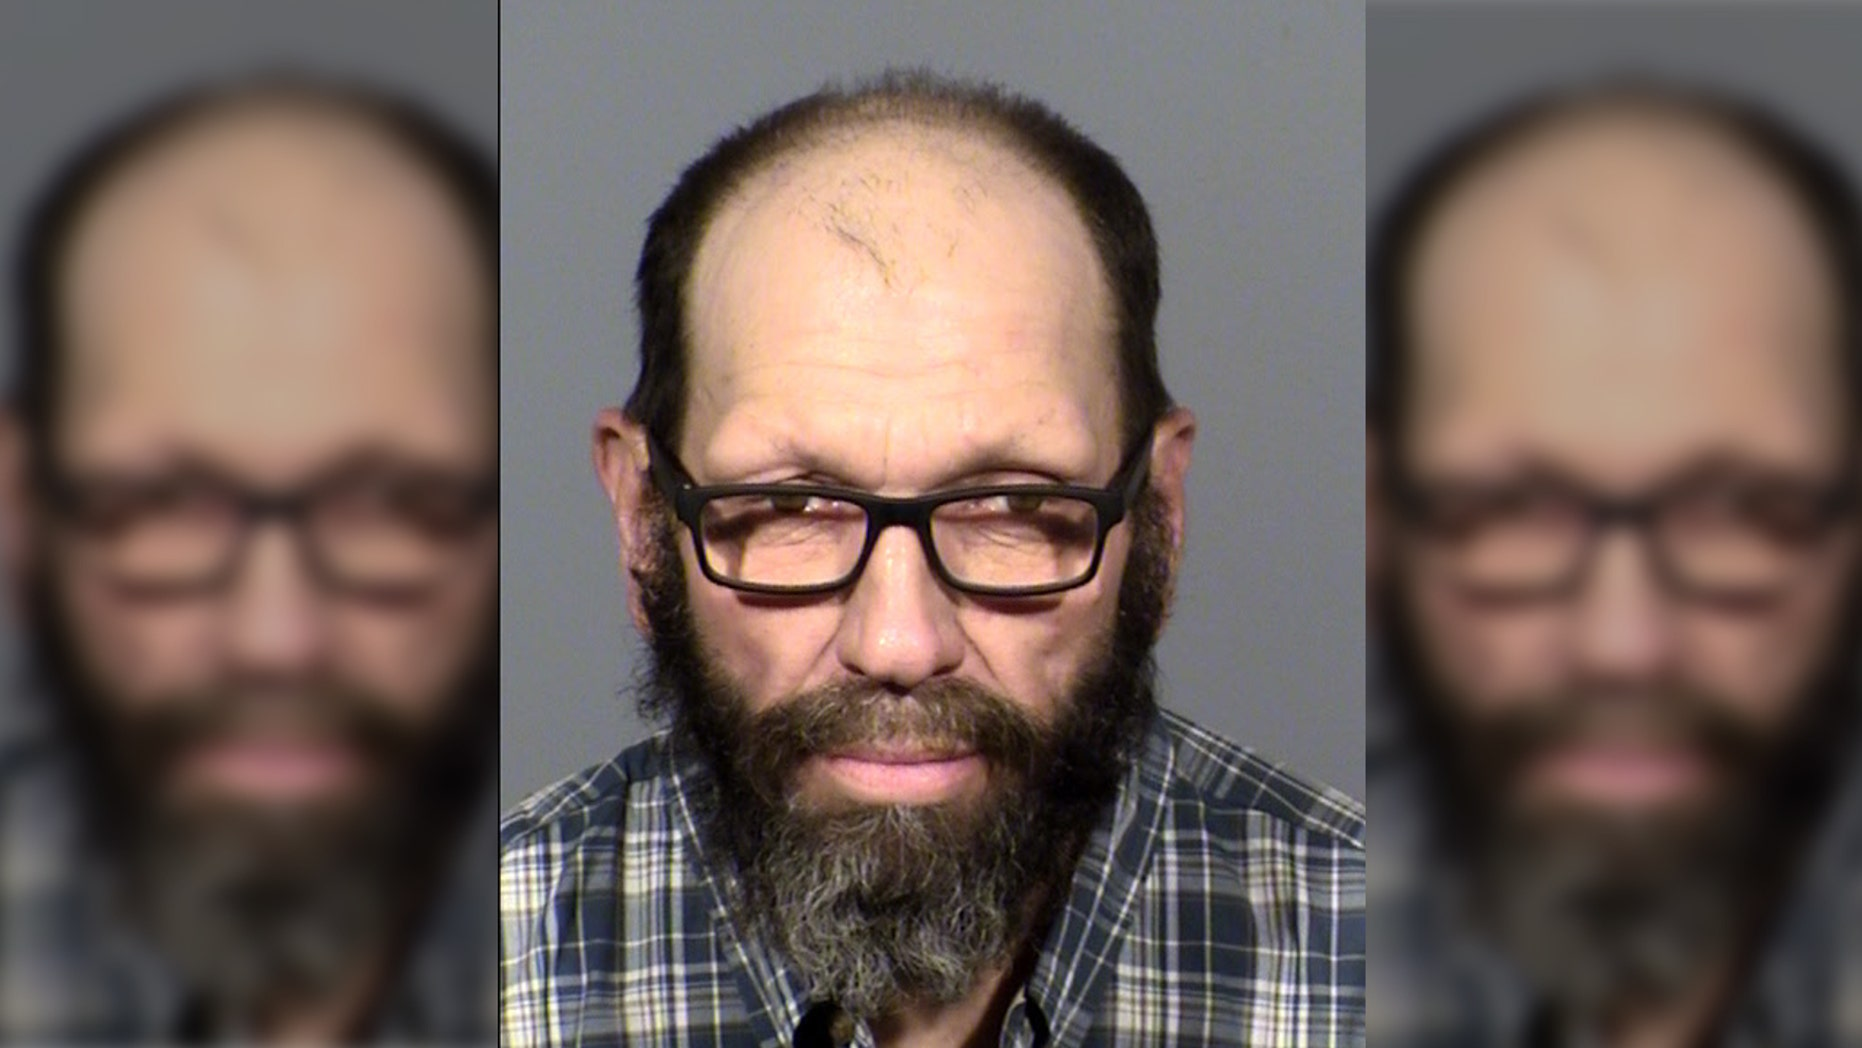 Edward Bedrusian was arrested over the weekend.